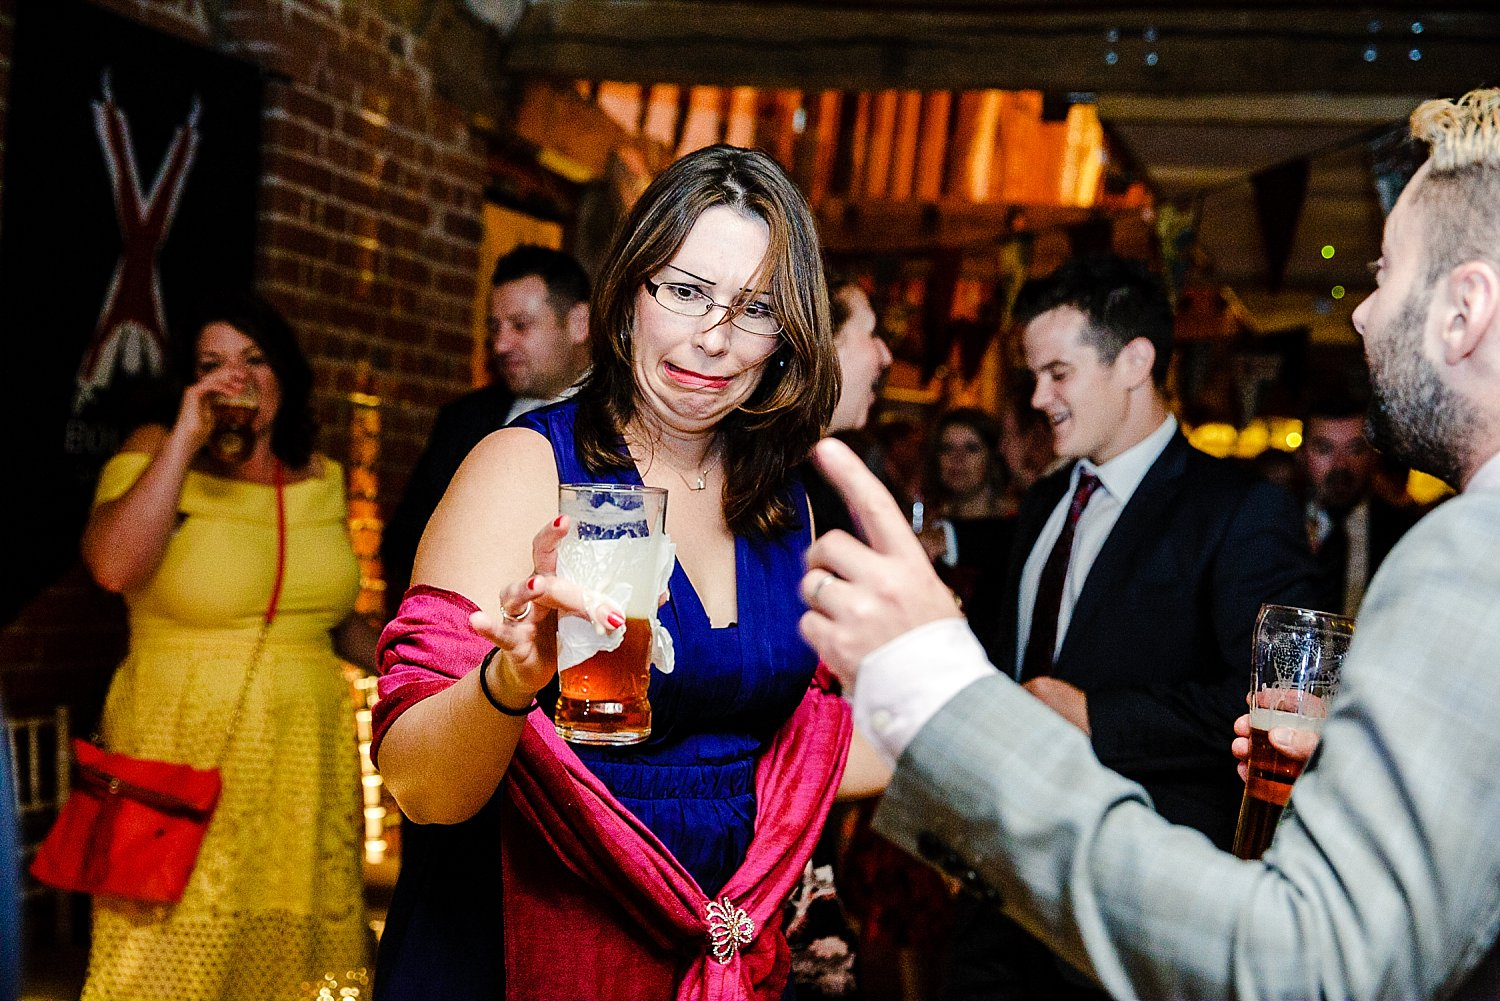 Tudor Barn Wedding Guest Spilling her beer on the dancefloor